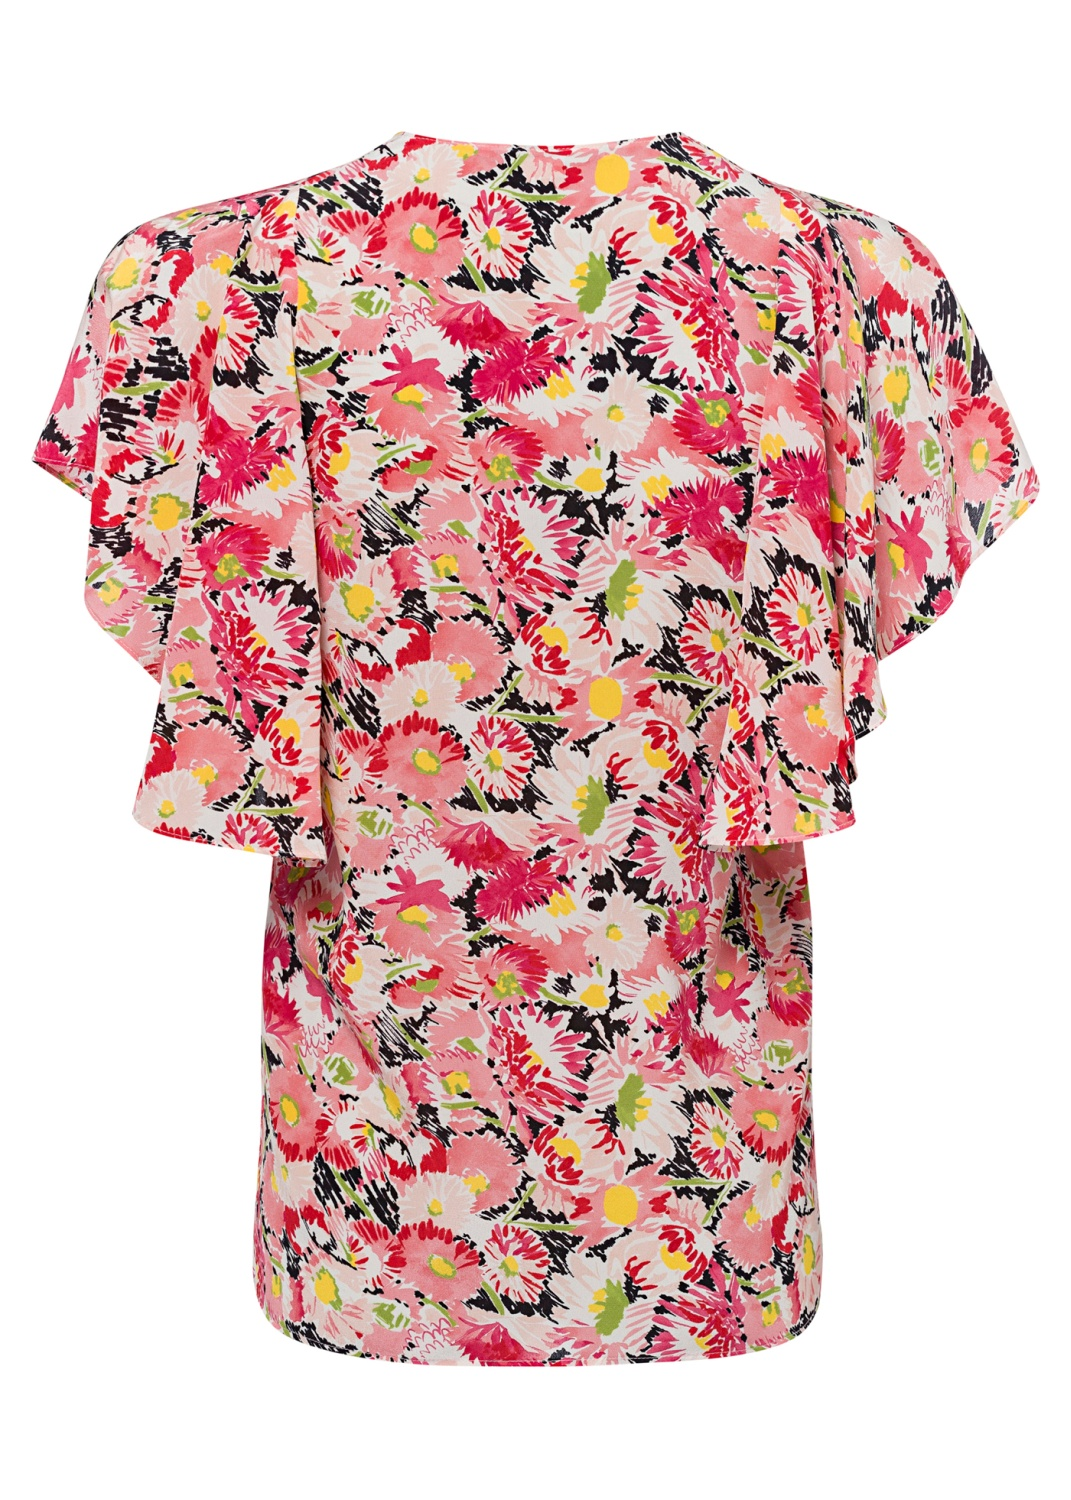 Mallory Top Watercolor Floral Silk Print image number 1